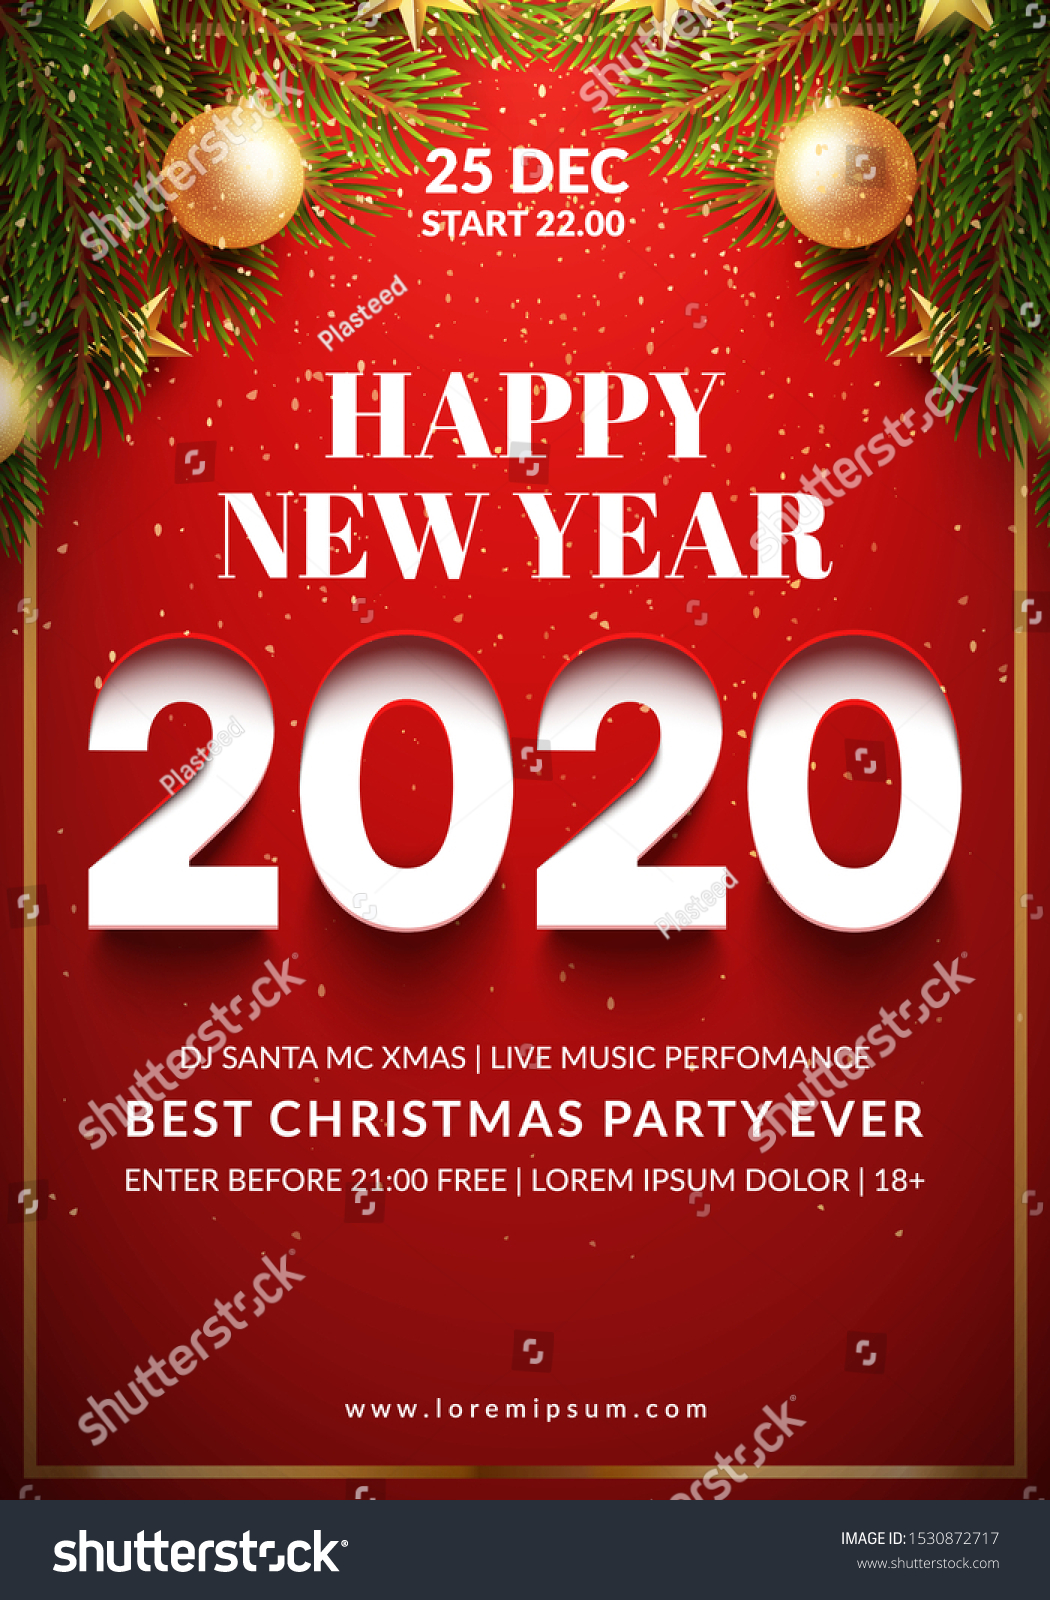 Mc Ds Open On Christmas Day 2020 Christmas Party Flyer Design 2020 3d Stock Vector (Royalty Free